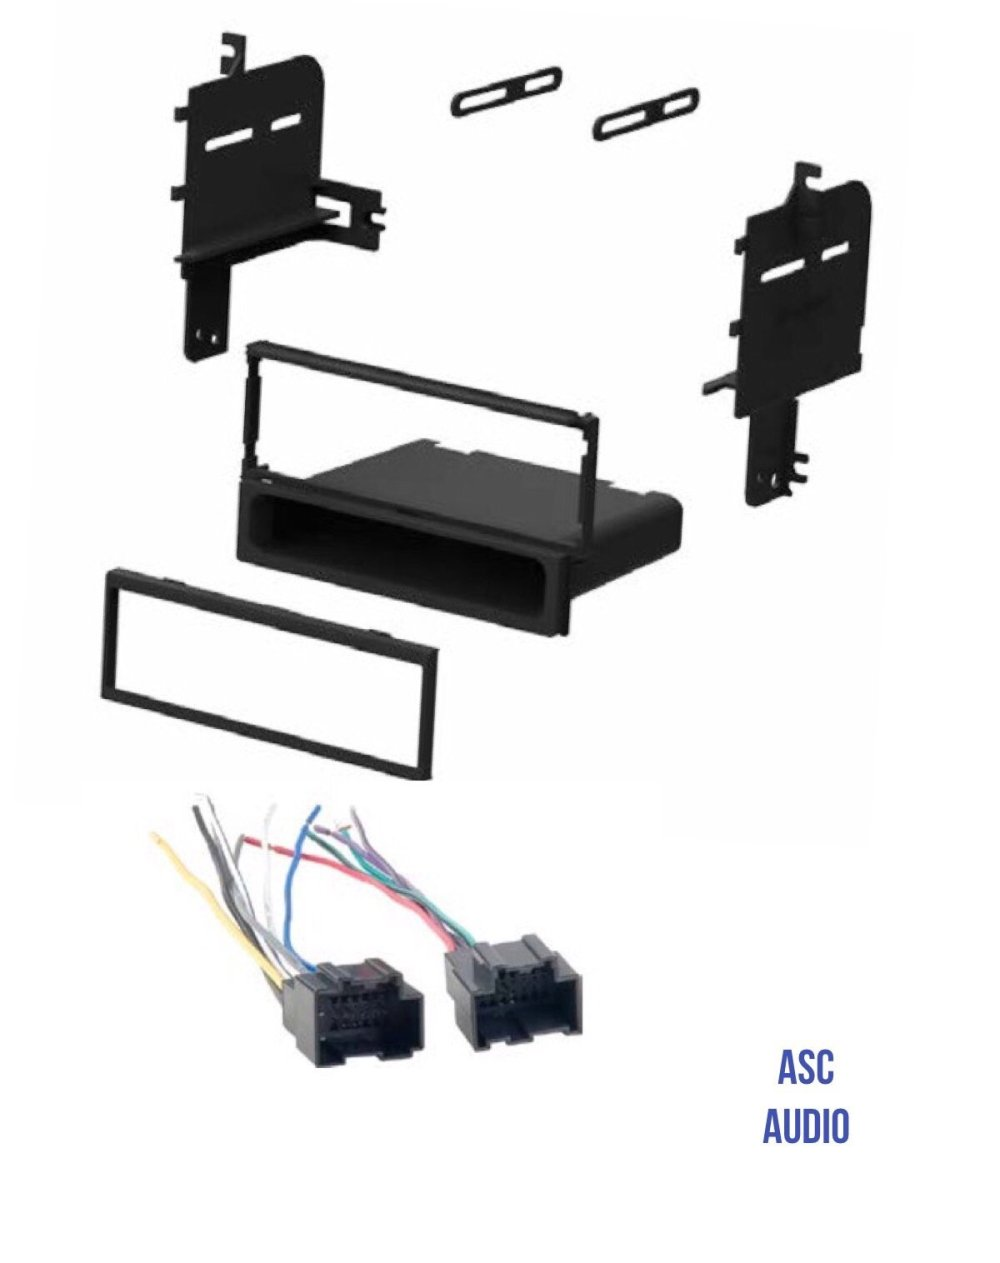 medium resolution of get quotations asc audio car stereo radio install dash kit and wire harness for installing an aftermarket single